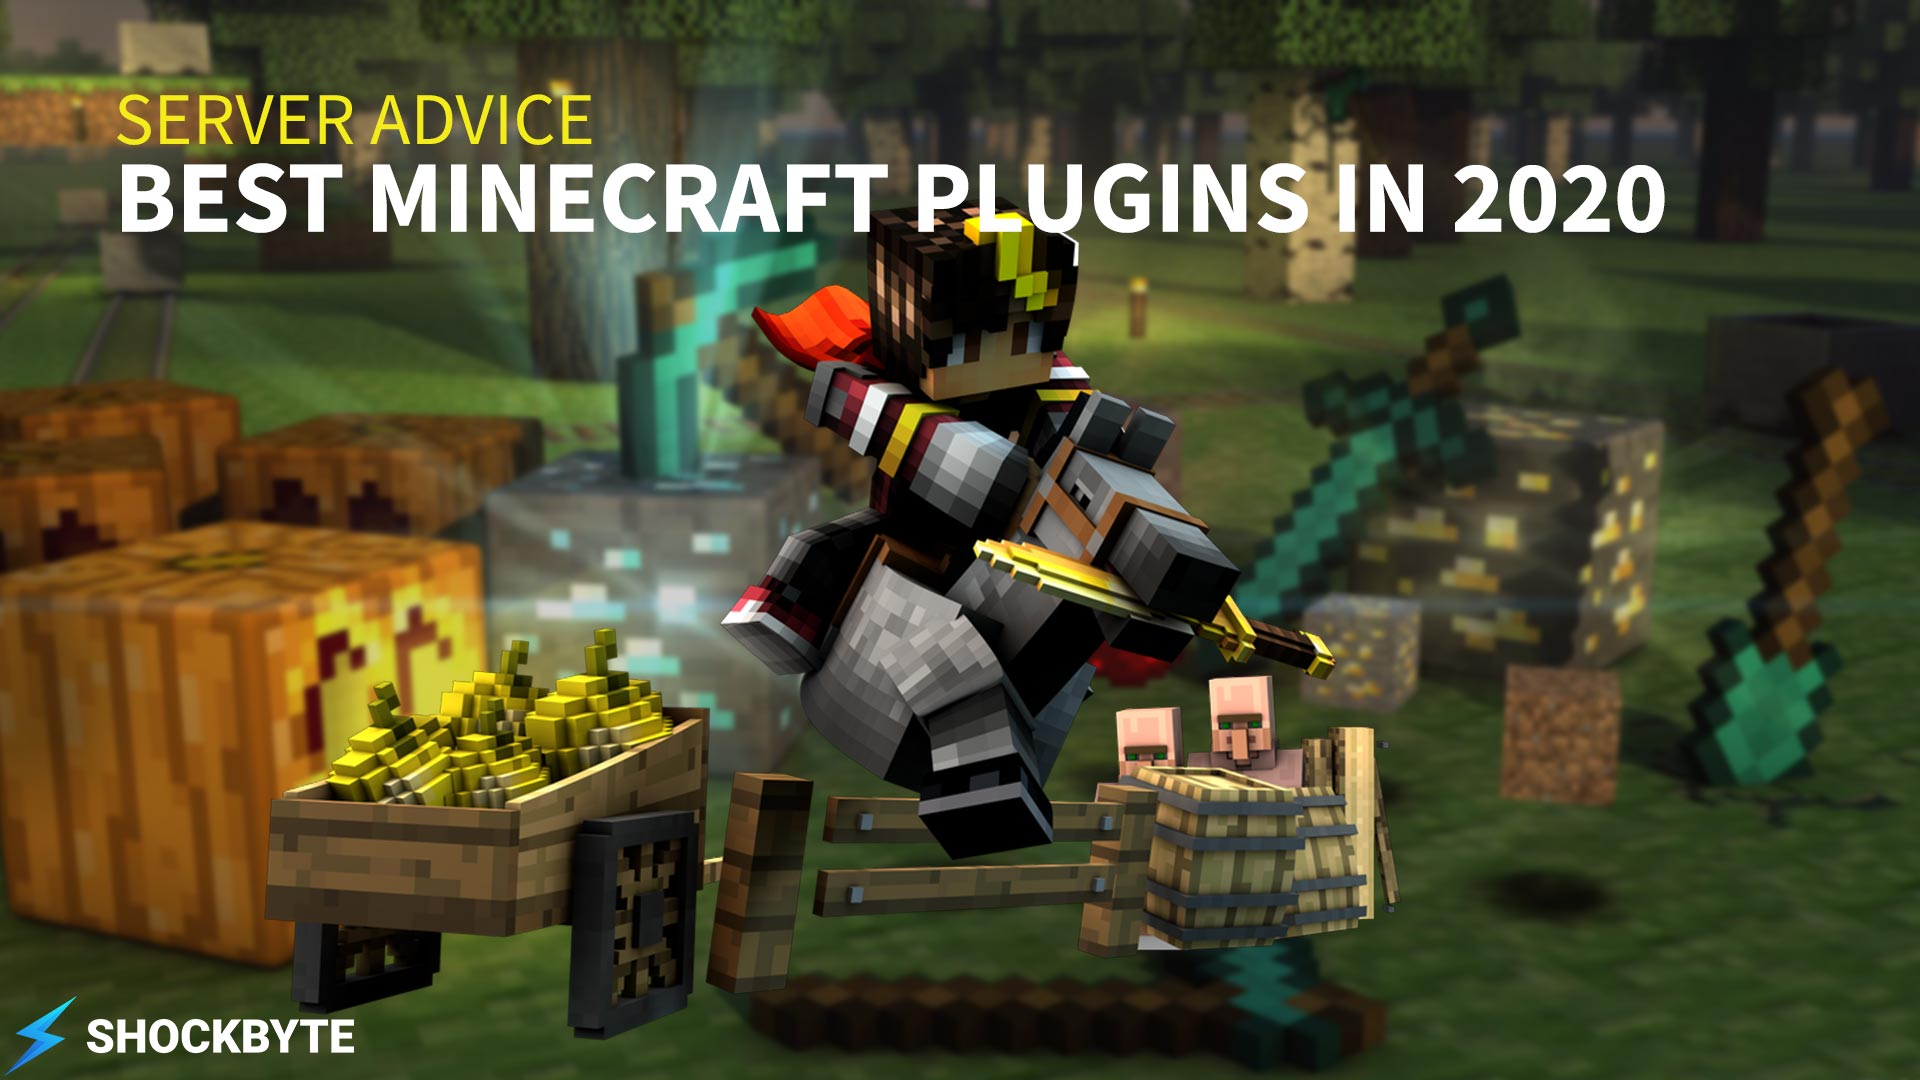 Best Minecraft Plugins In 2020 Shockbyte